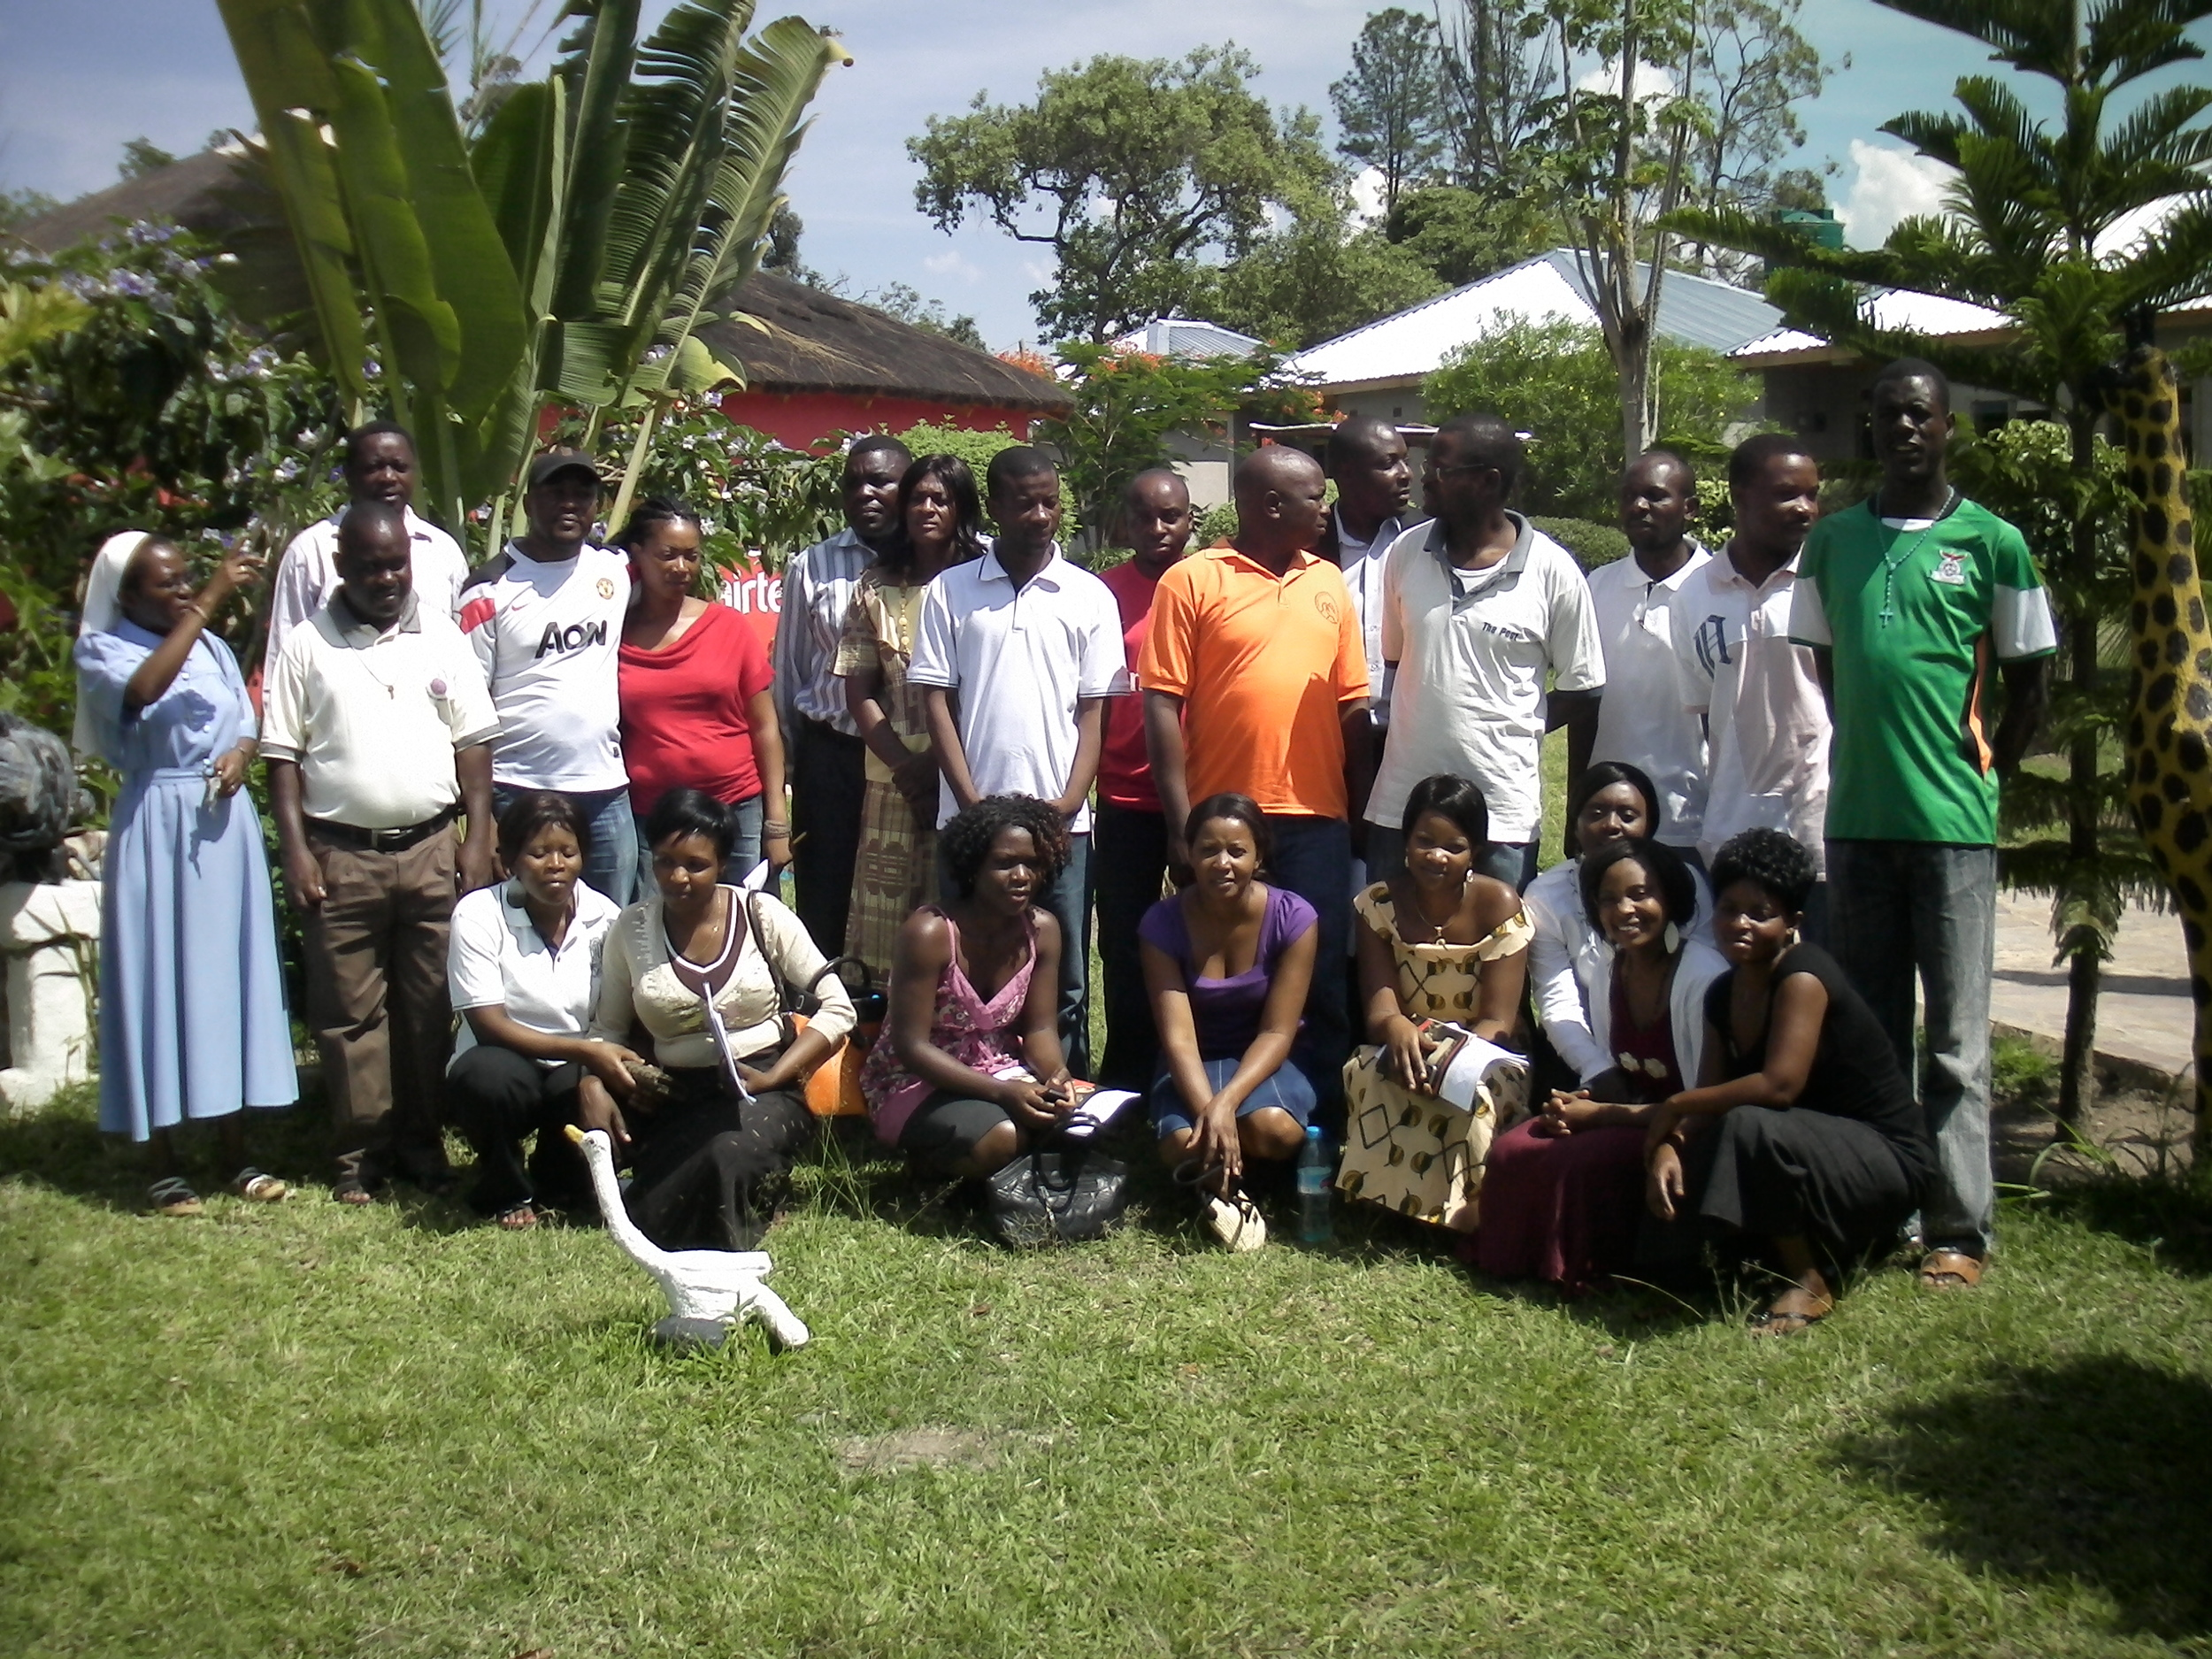 Couple facilitators for the diocese of Mansa